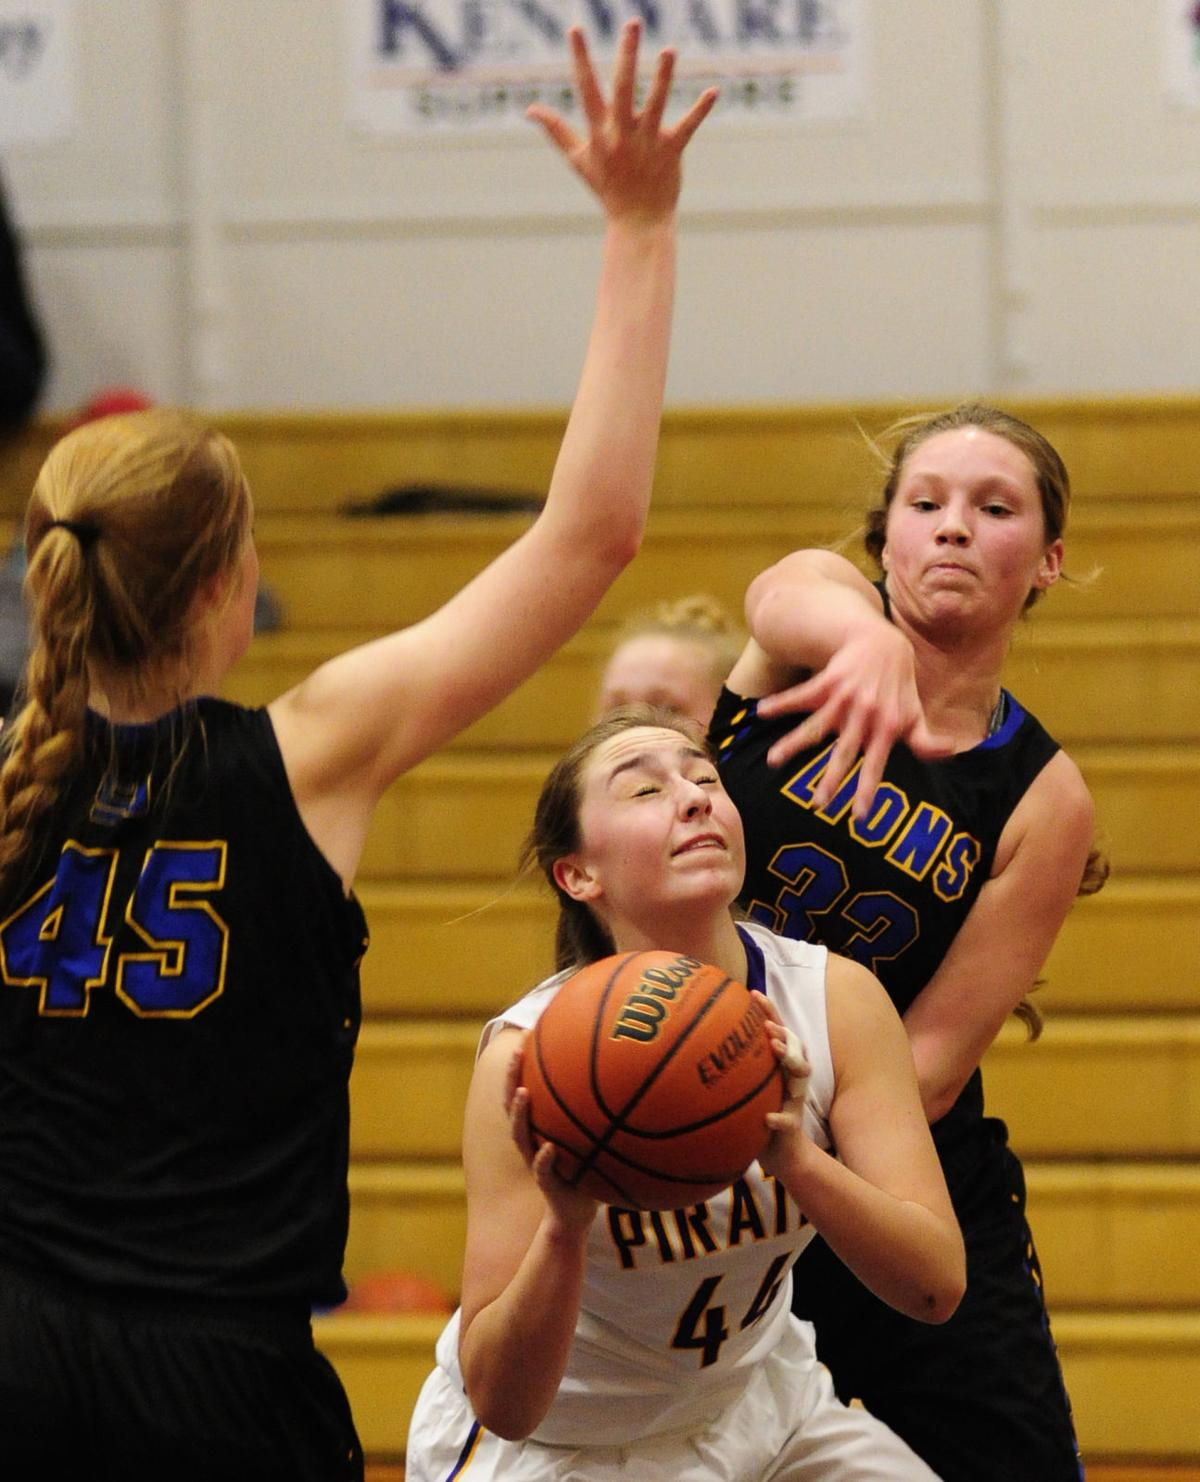 Marshfield takes down Cottage Grove